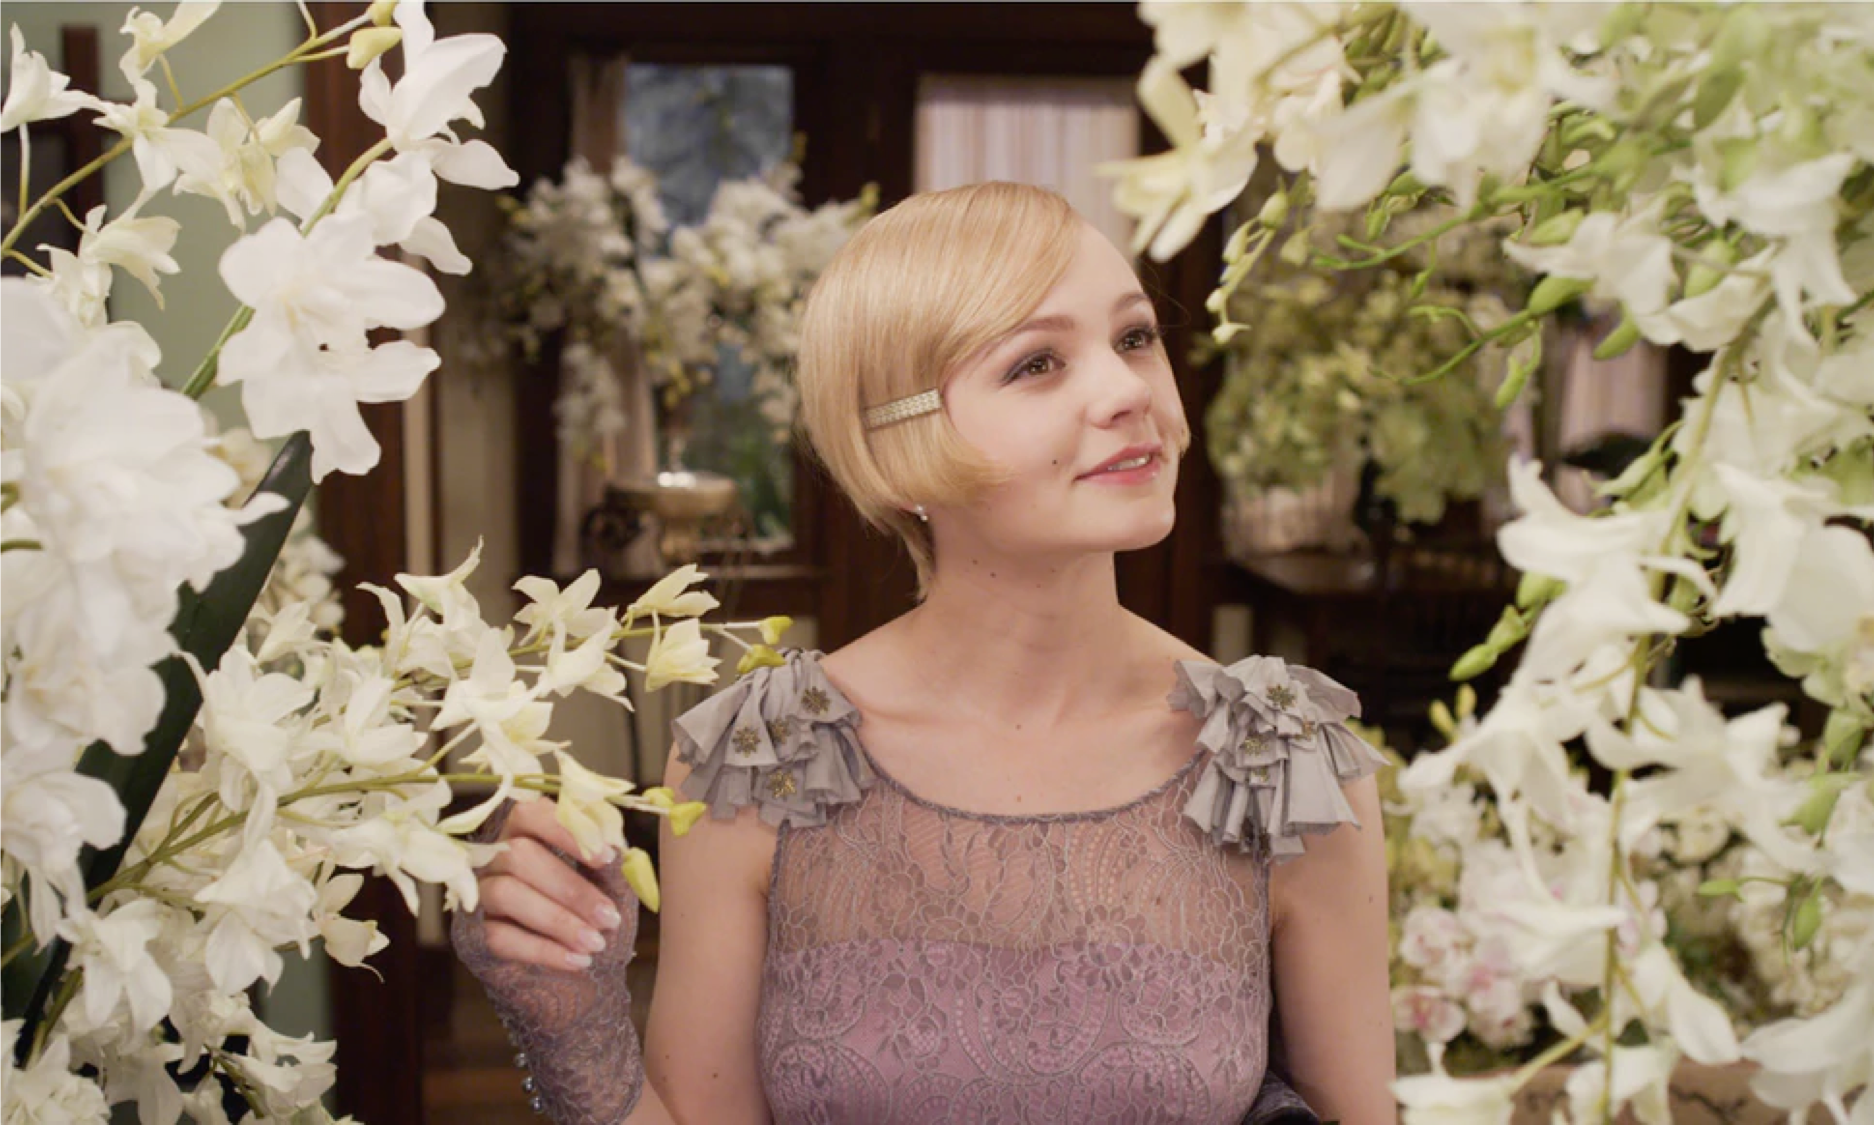 Carey Mulligan as Daisy Buchanan in Great Gatsby, styled by Catherine Martin